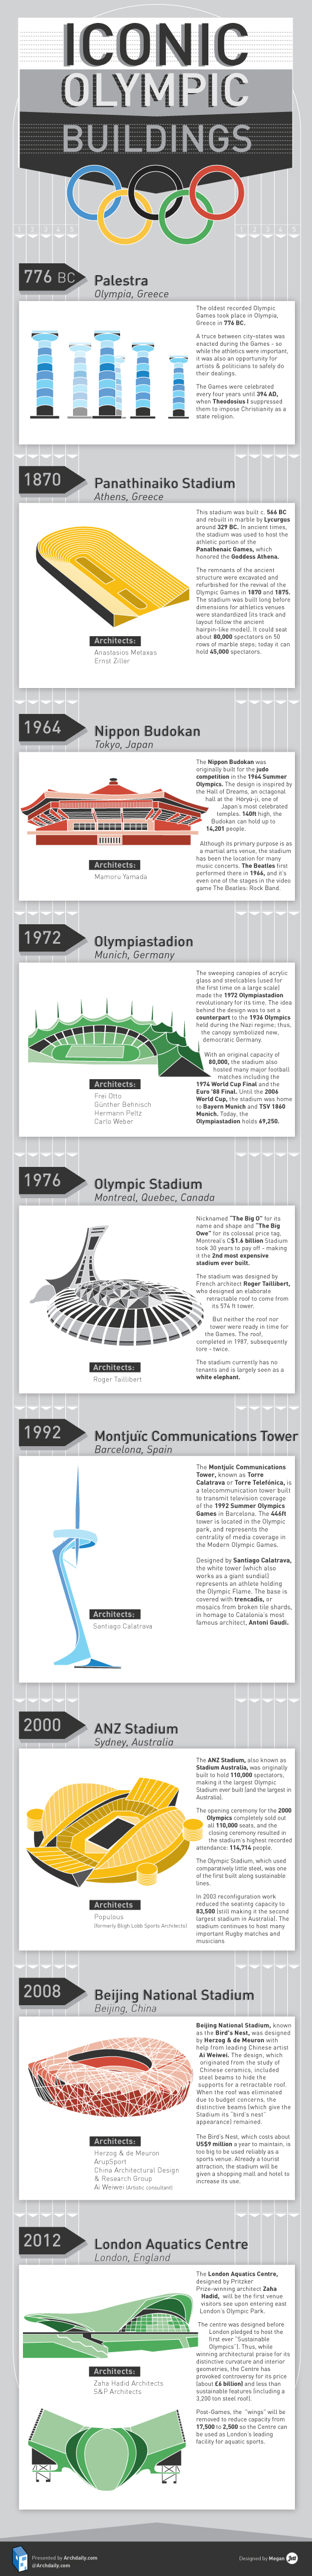 Infographic: Iconic Olympic Buildings | ArchDaily